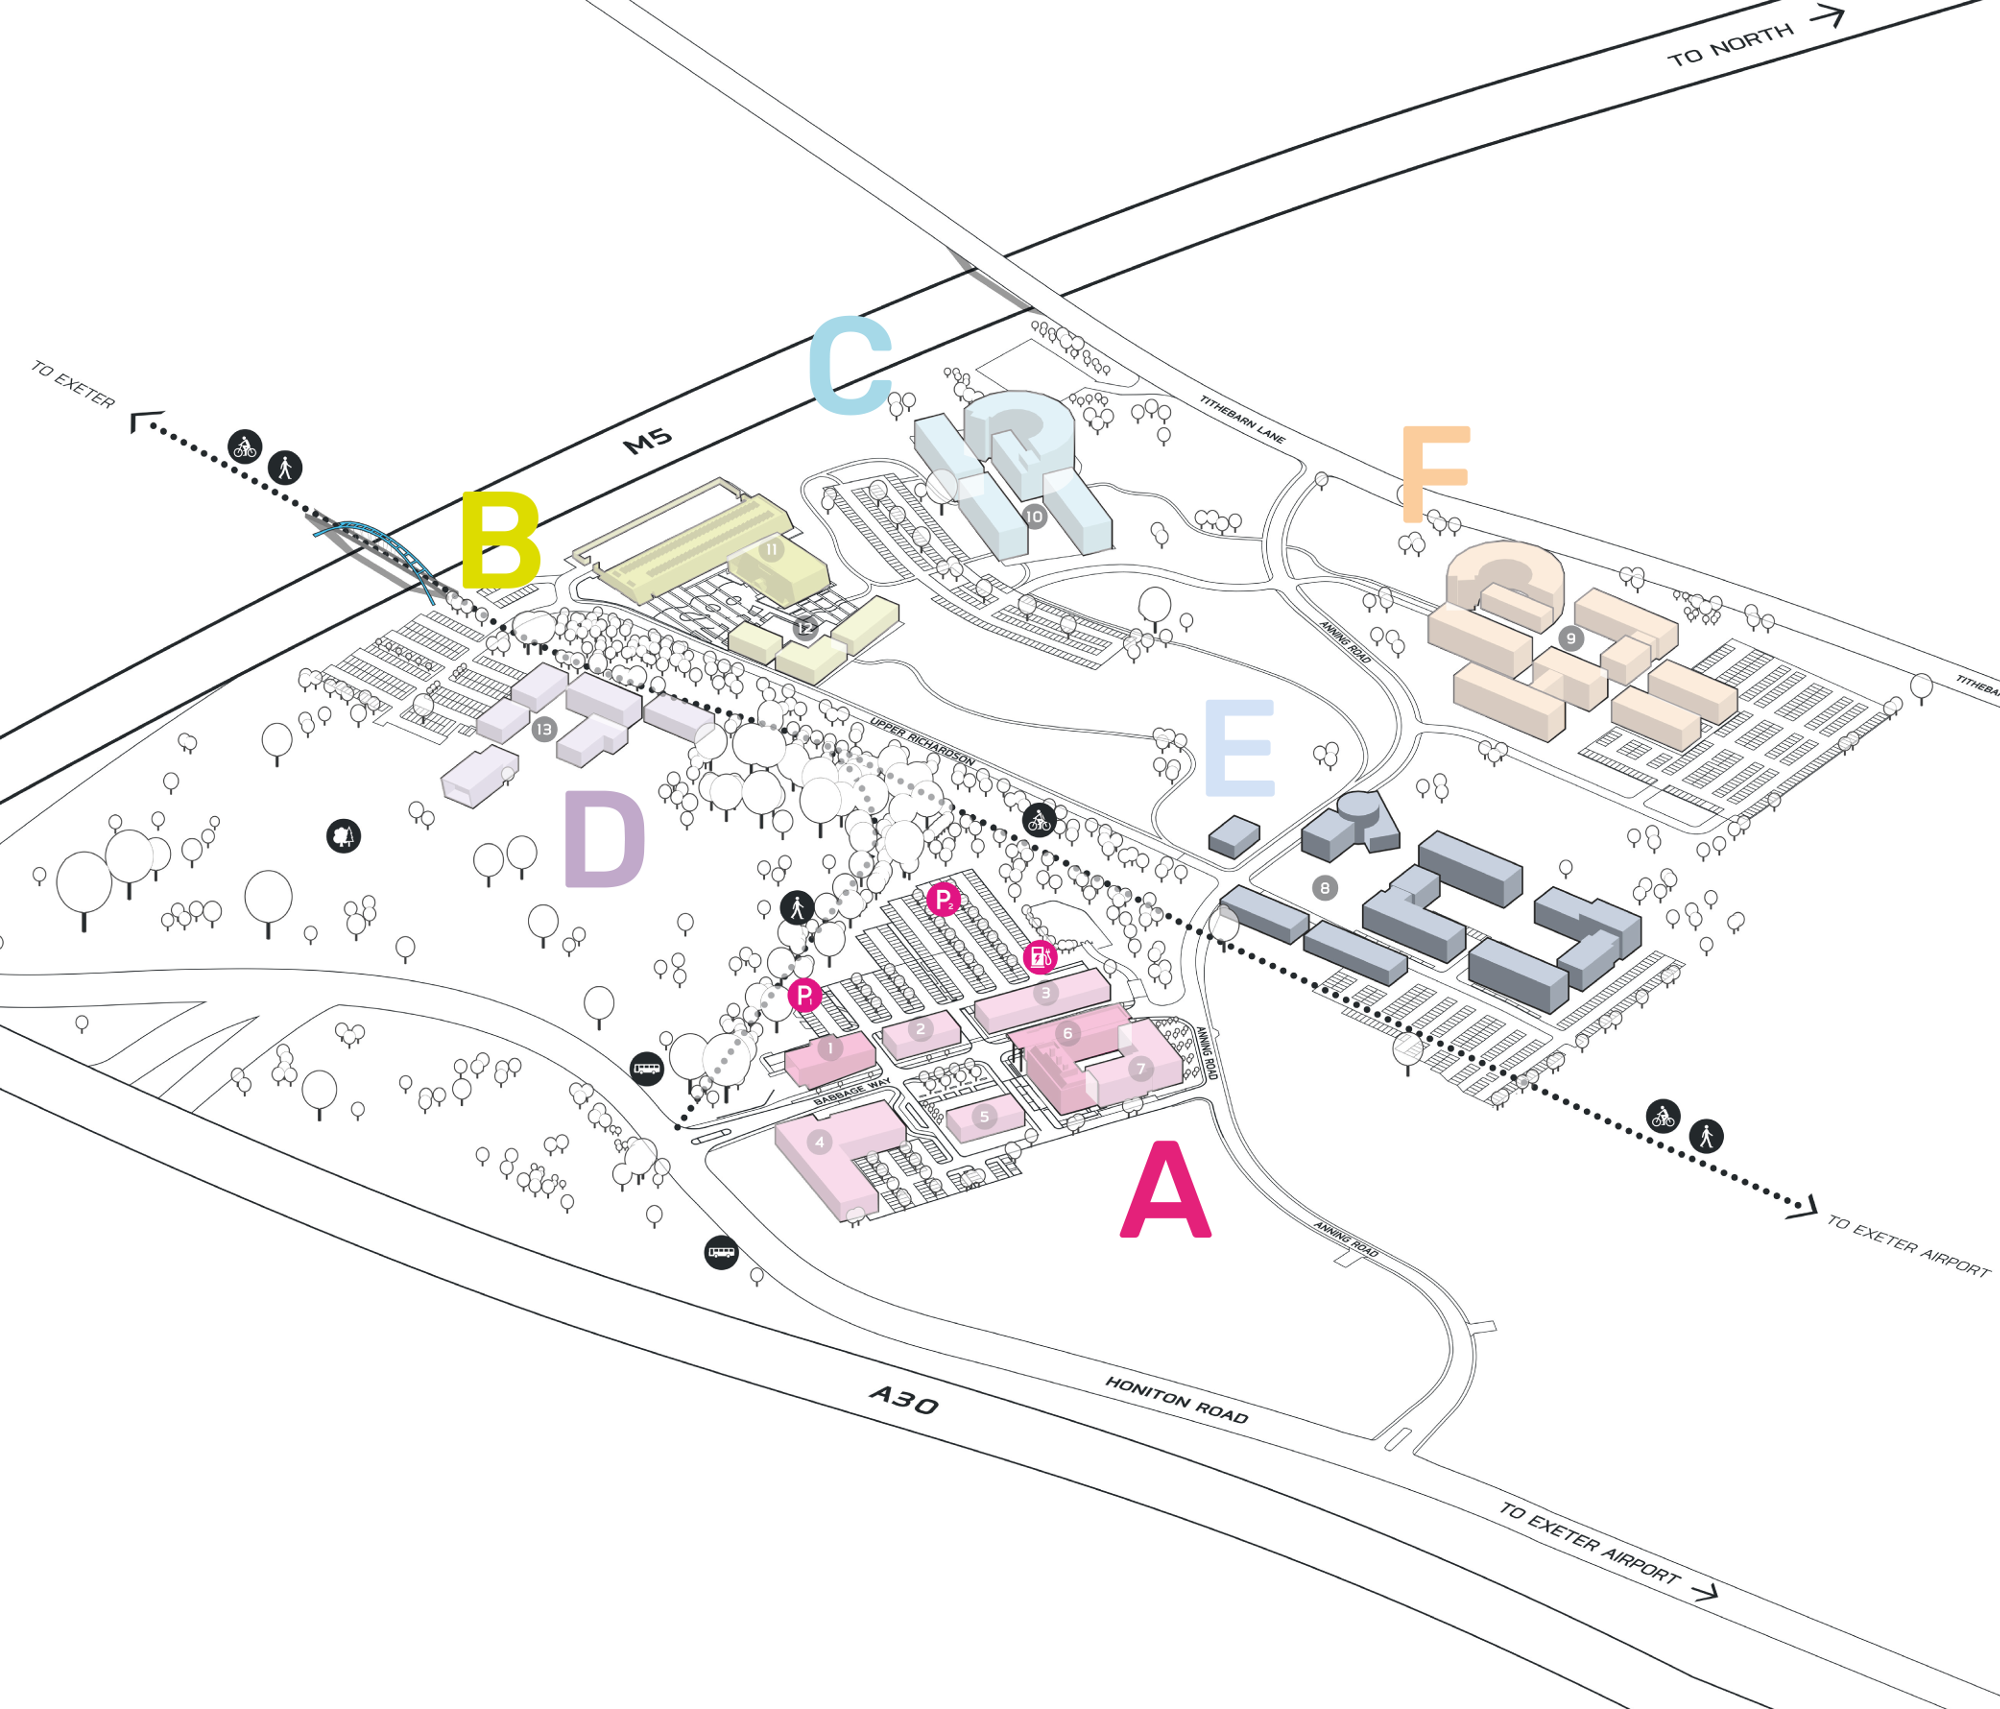 Park Plan highlighting cluster E